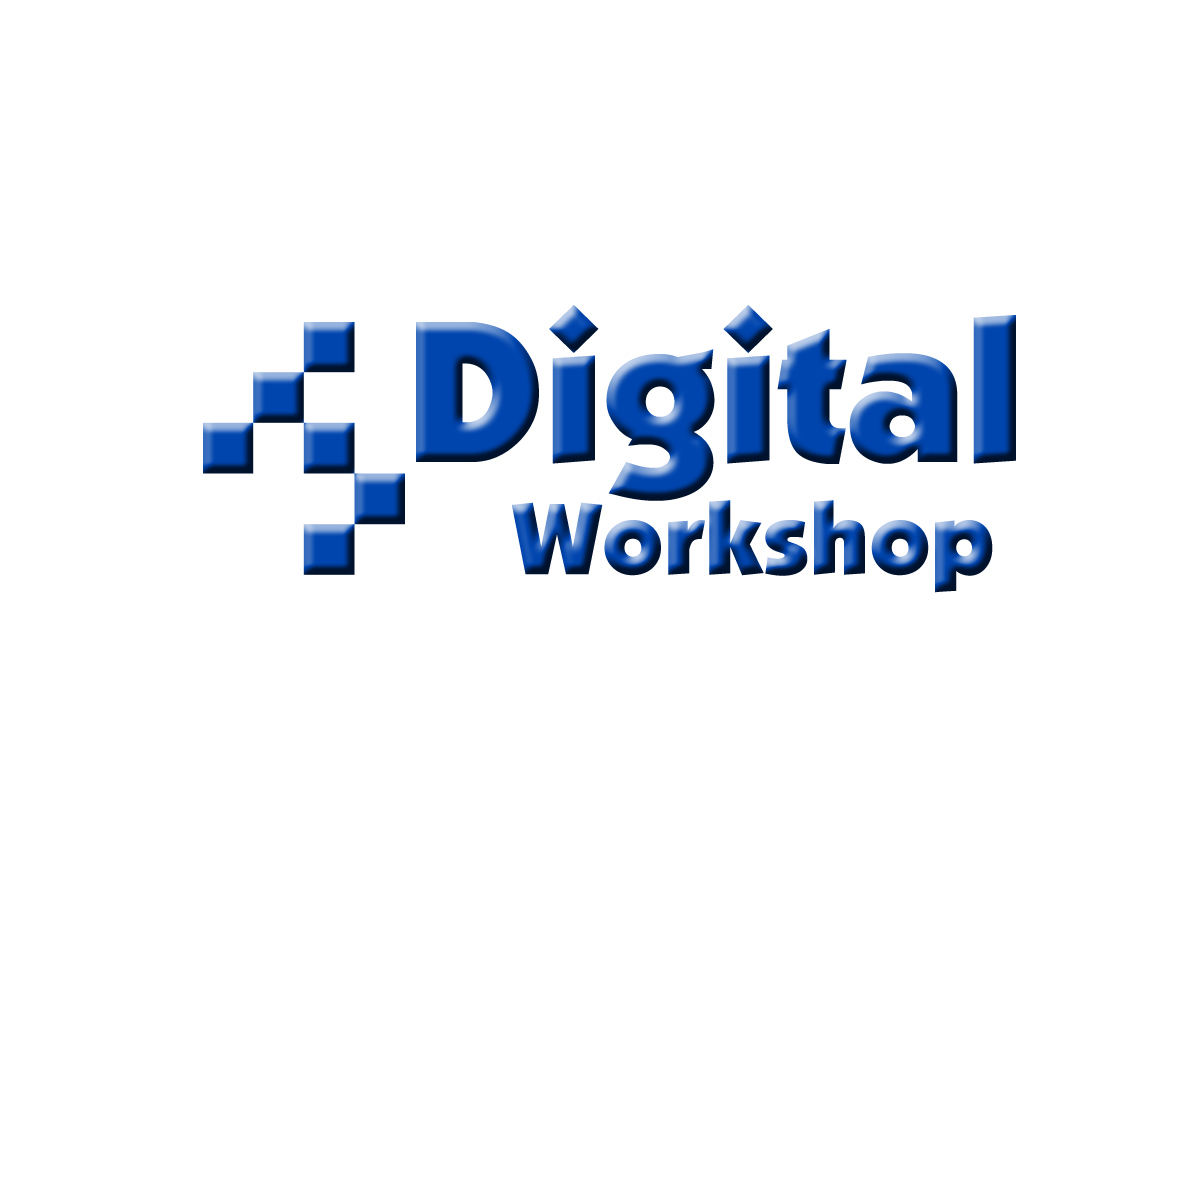 9h-Digital Workshop